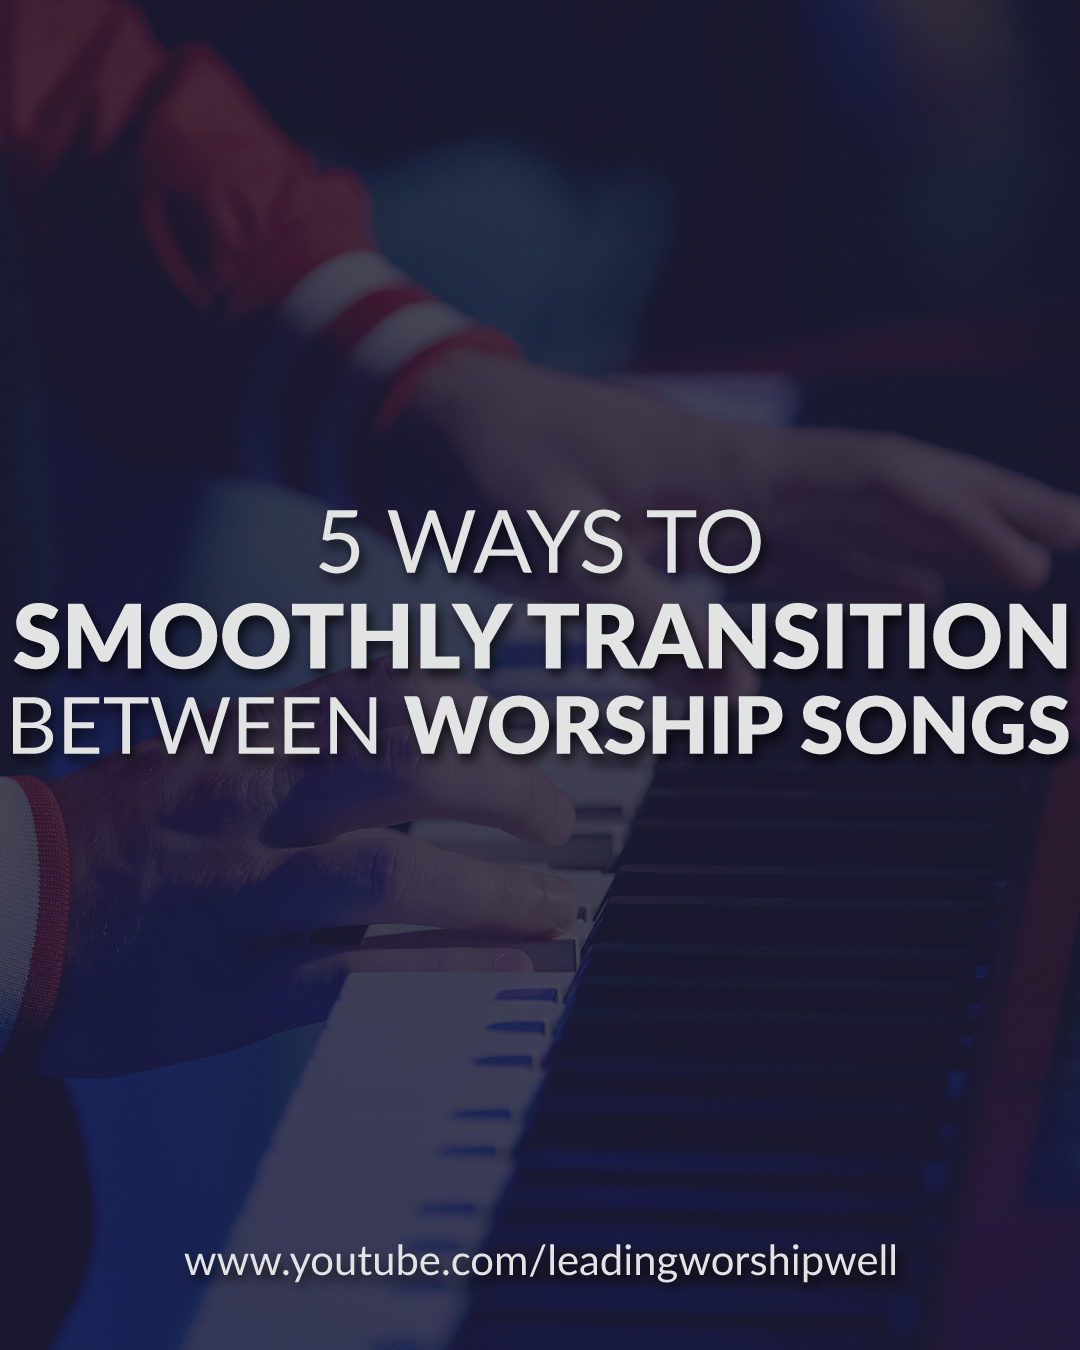 5 Ways To Smoothly Transition Between Worship Songs (Video)